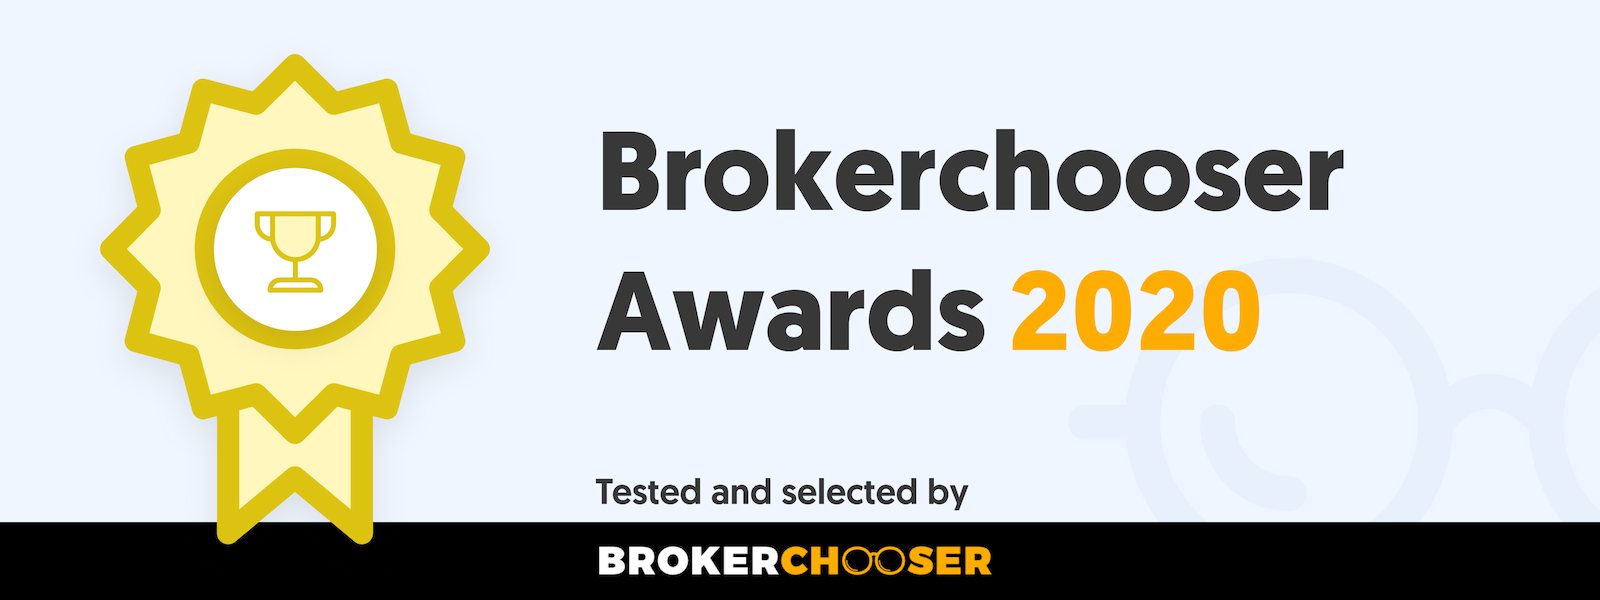 BrokerChooser Awards for 2020